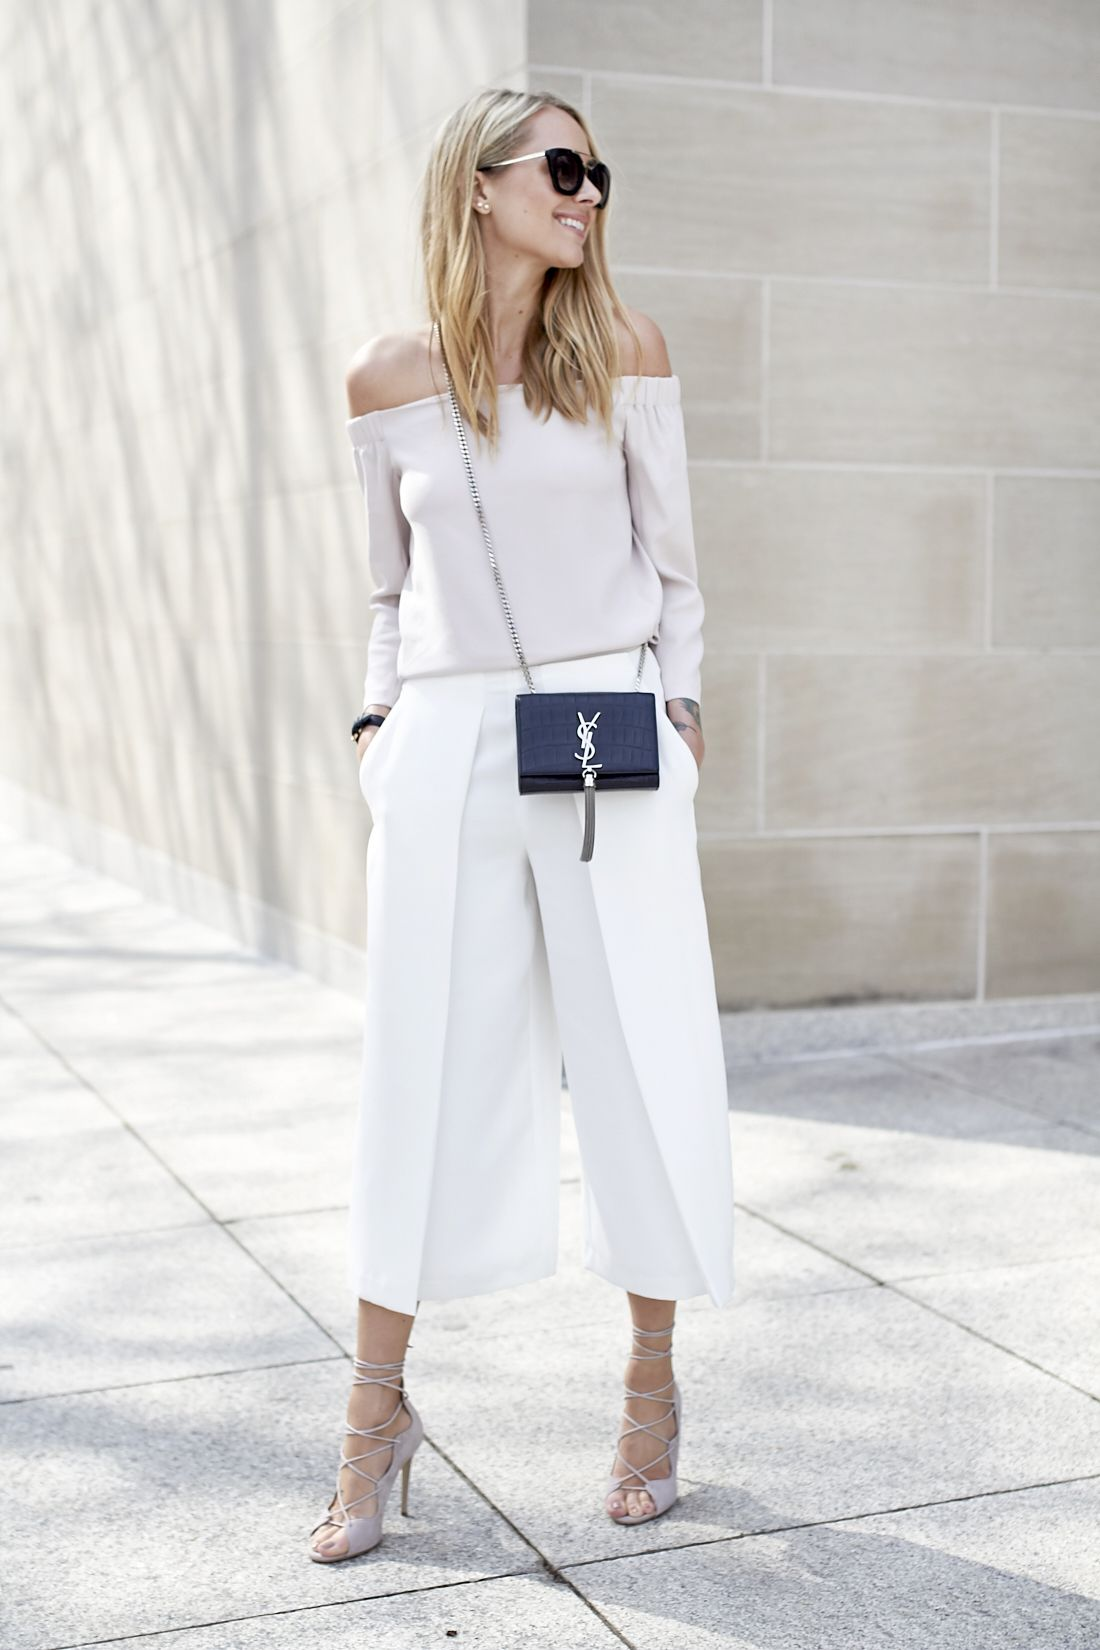 fdd6996ee8b ... culotte pants and off-the-shoulder top! M. GEMI LACE UP HEELS